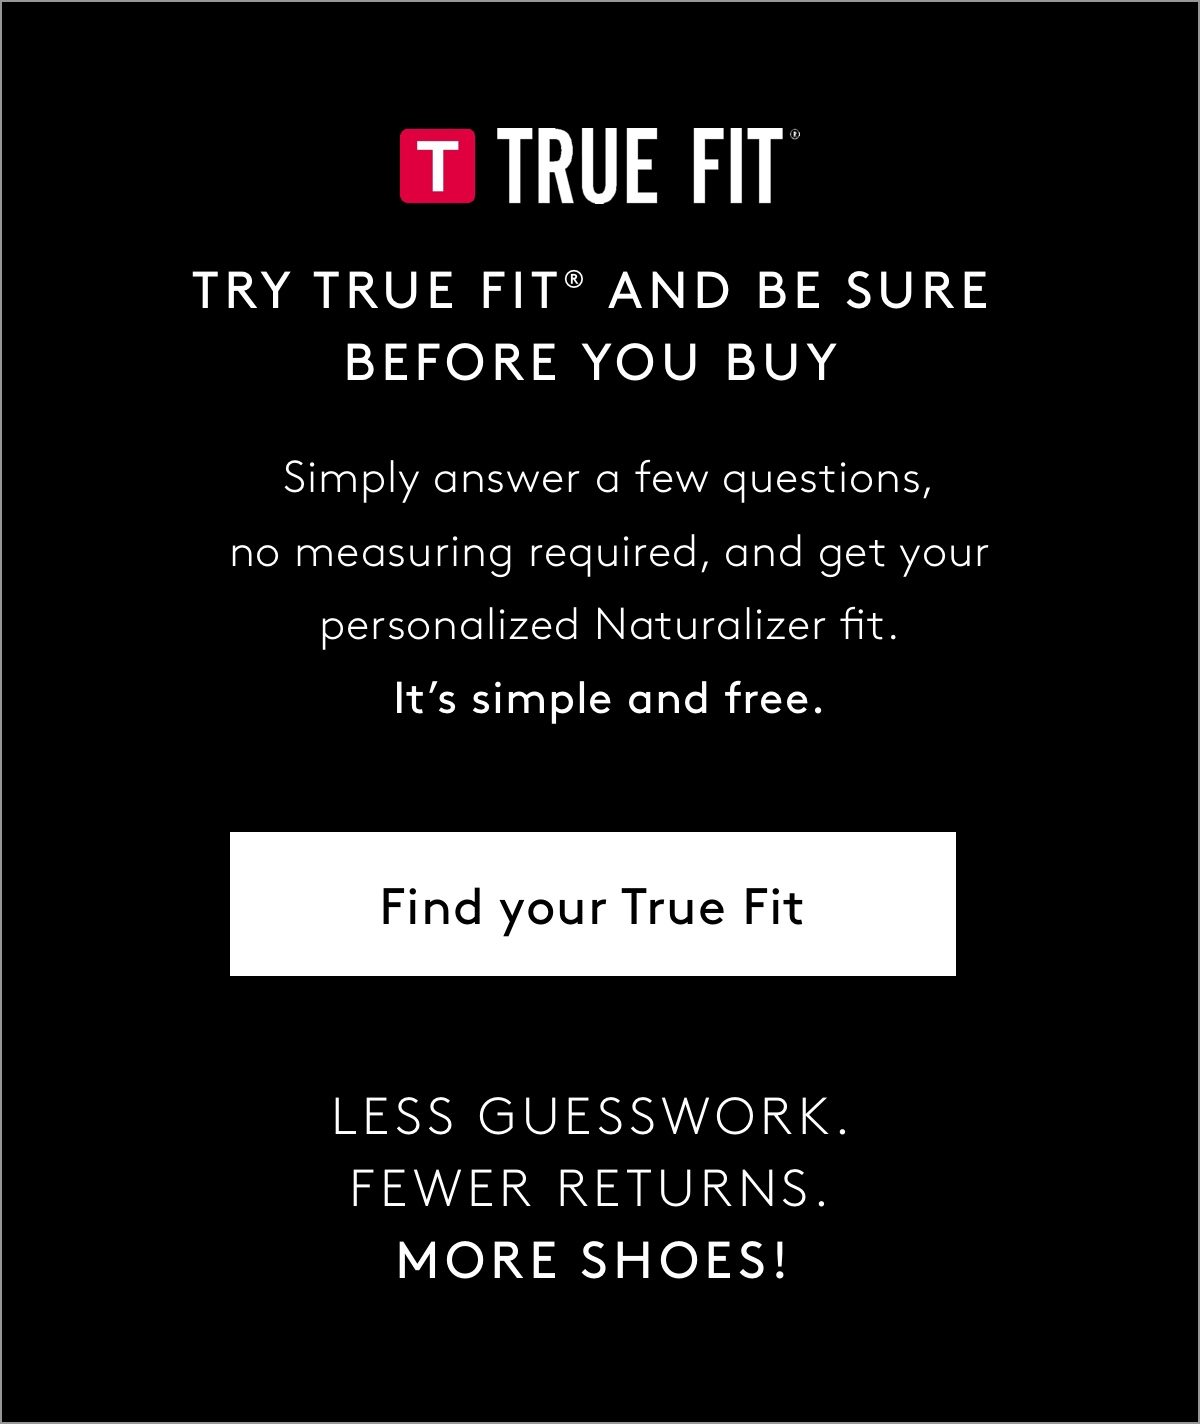 Try True Fit® And Be Sure Before You Buy: Simply answer a few questions, no measuring required, and get your personalized Naturalizer fit. It's simple and free. Find Your True Fit   Less Guesswork. Fewer Returns. More Shoes!